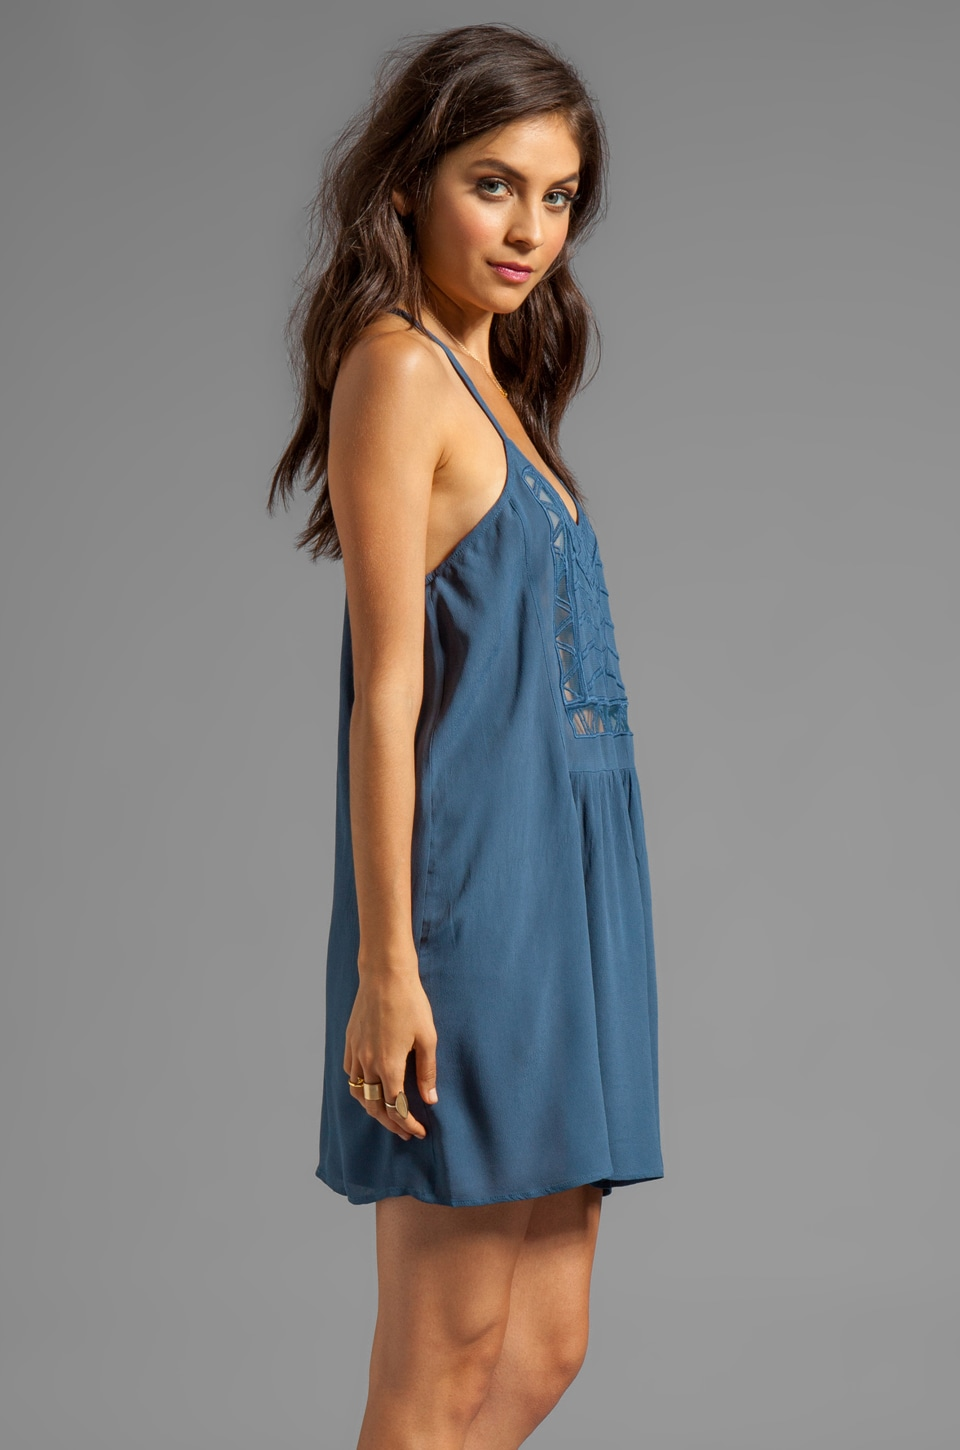 Ladakh Amazon Tribe Dress in Denim